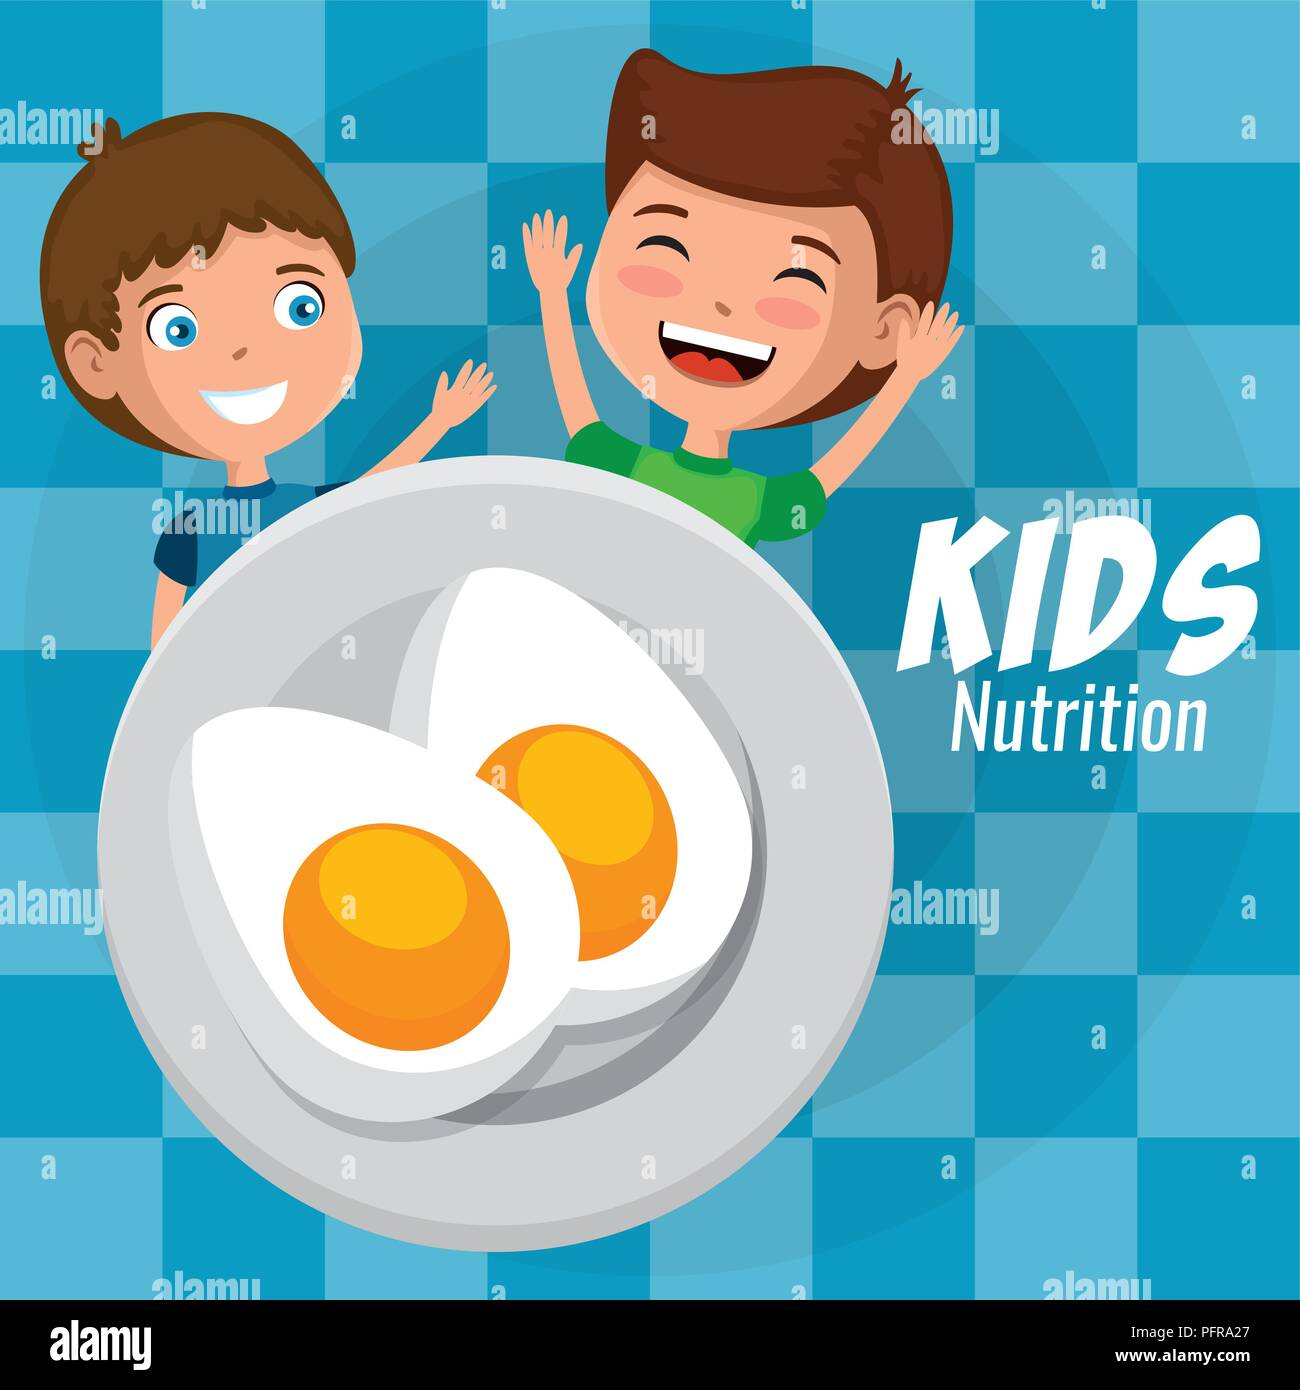 Children Plate Stock Vector Images - Alamy